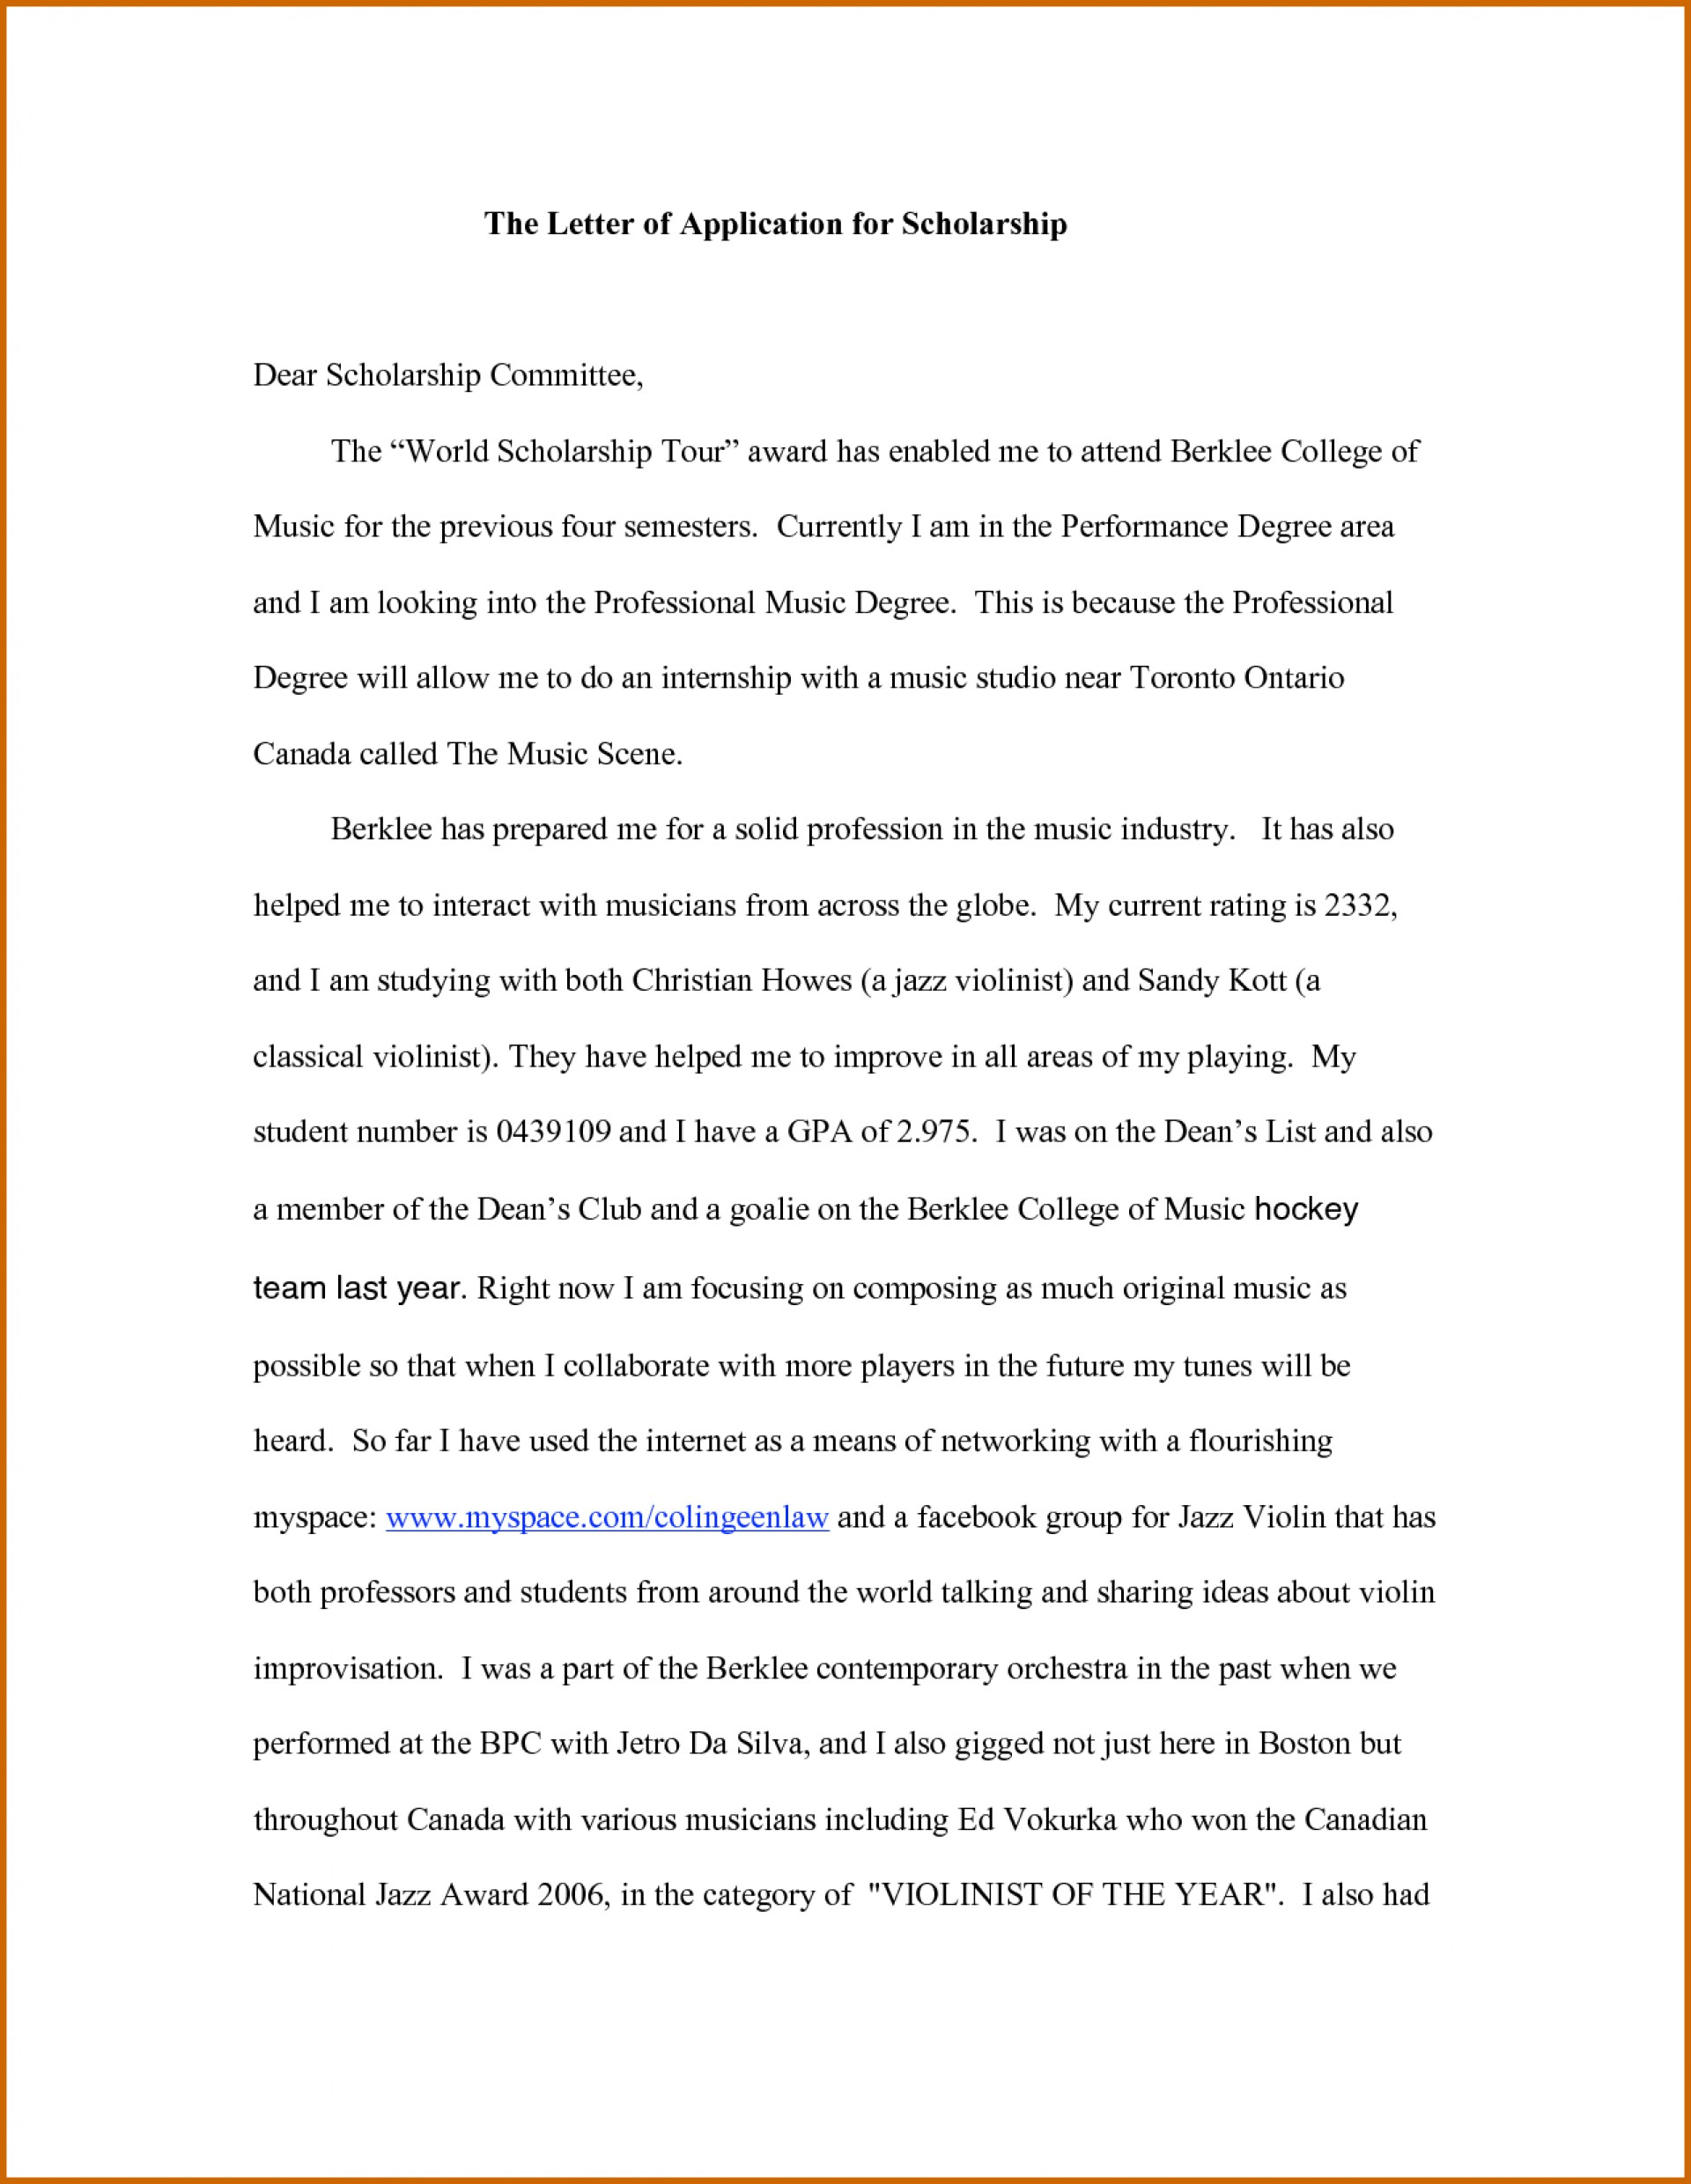 004 How To Write Application For Scholarship Essays Essay Best Winning A Book Pdf Tips On 1920